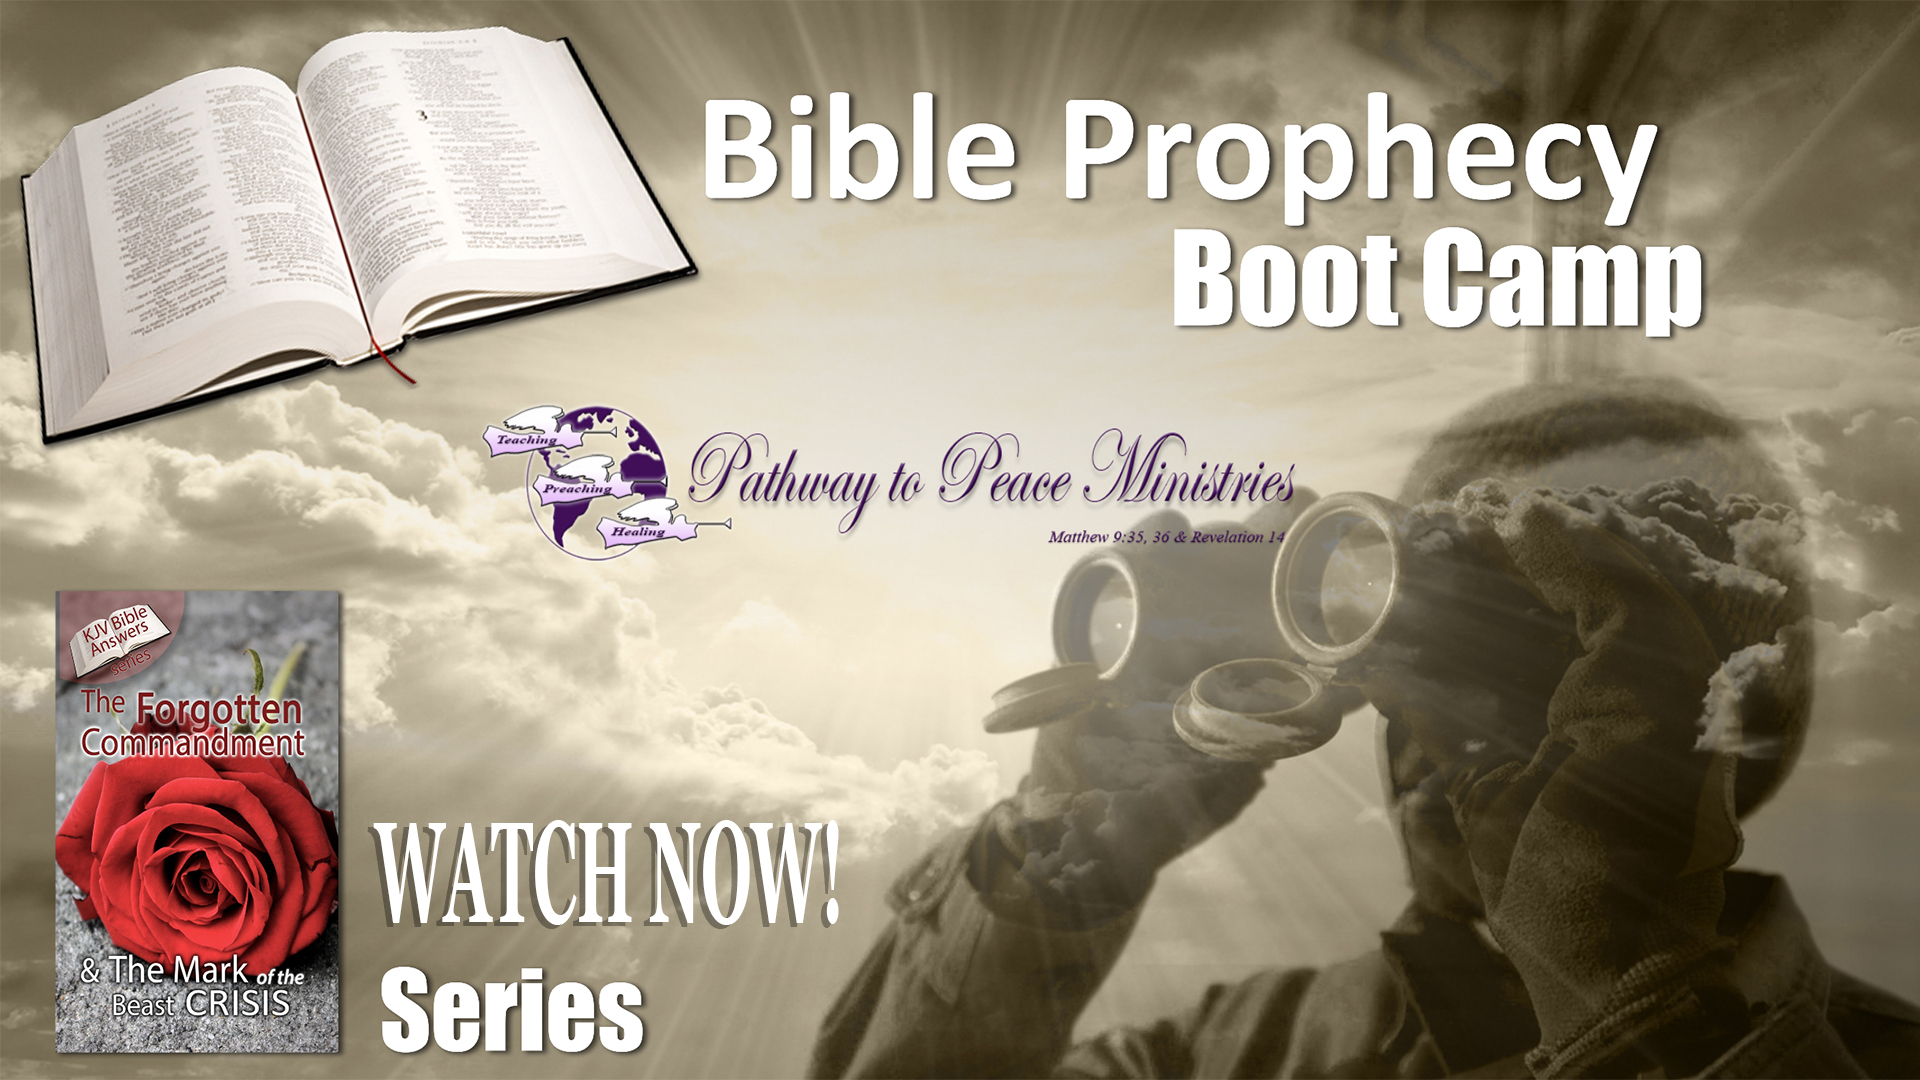 Bible Prophecy Boot Camp